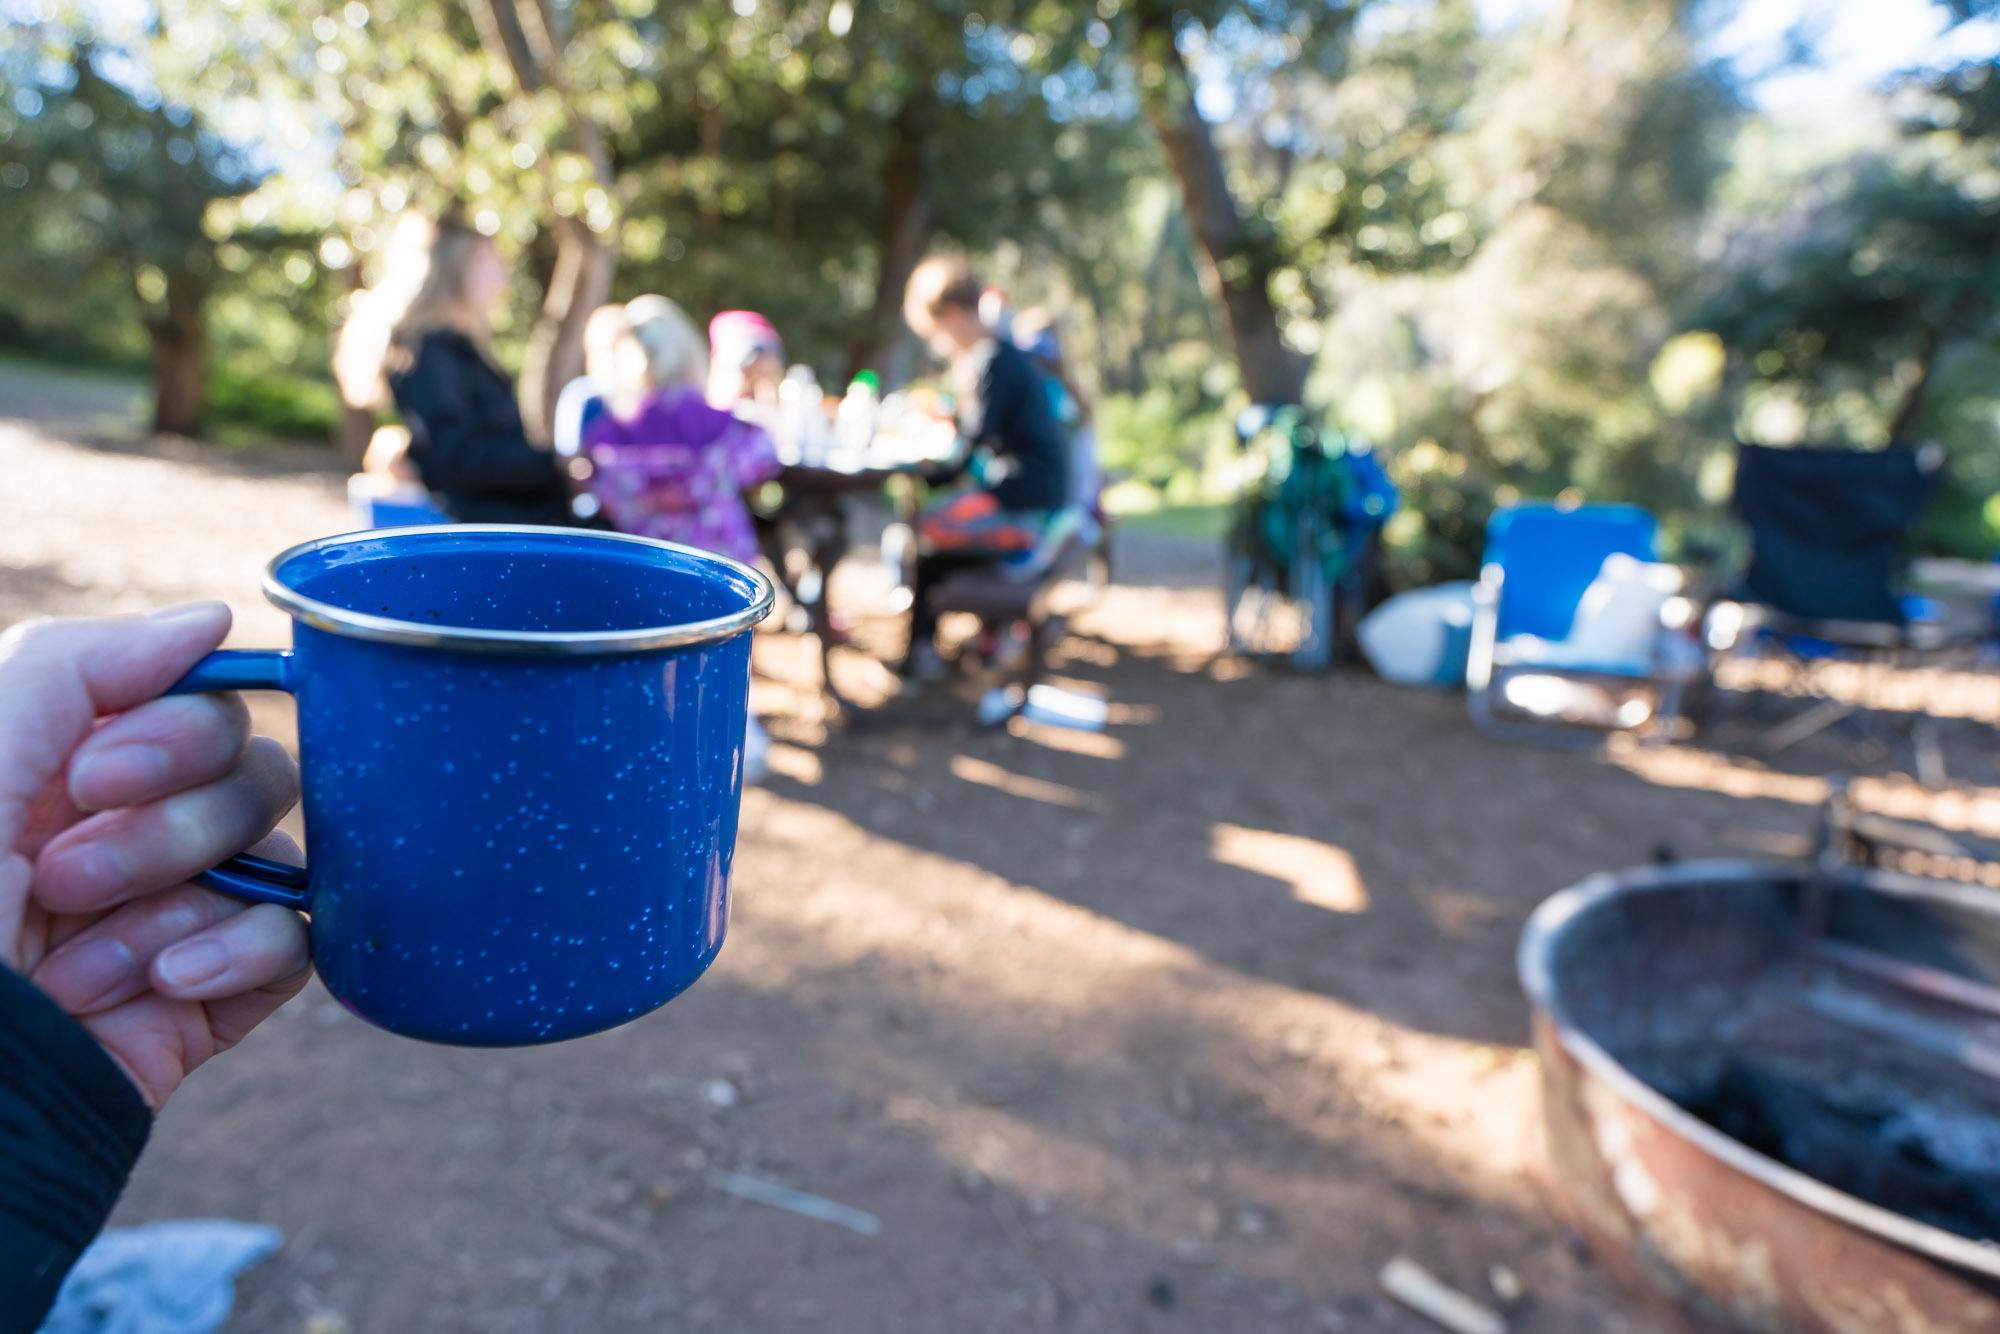 Go camping with friends at William Heise County Park in Julian, California